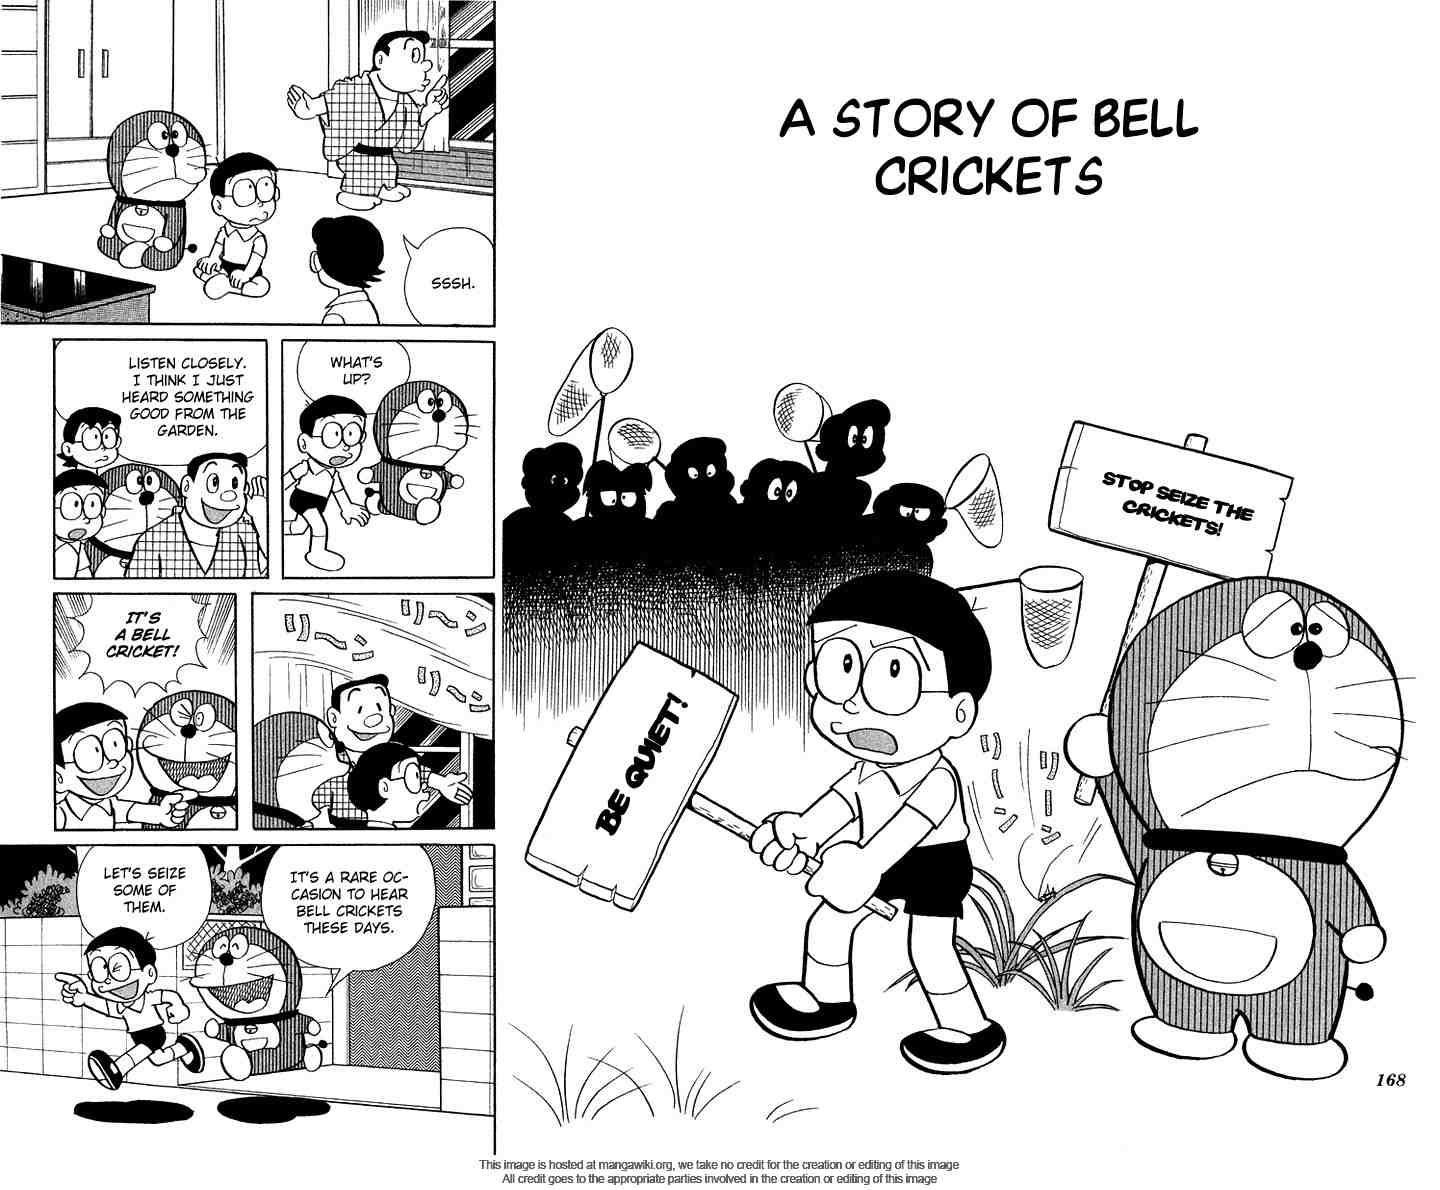 Chapter 20: A Story of Bell Crickets